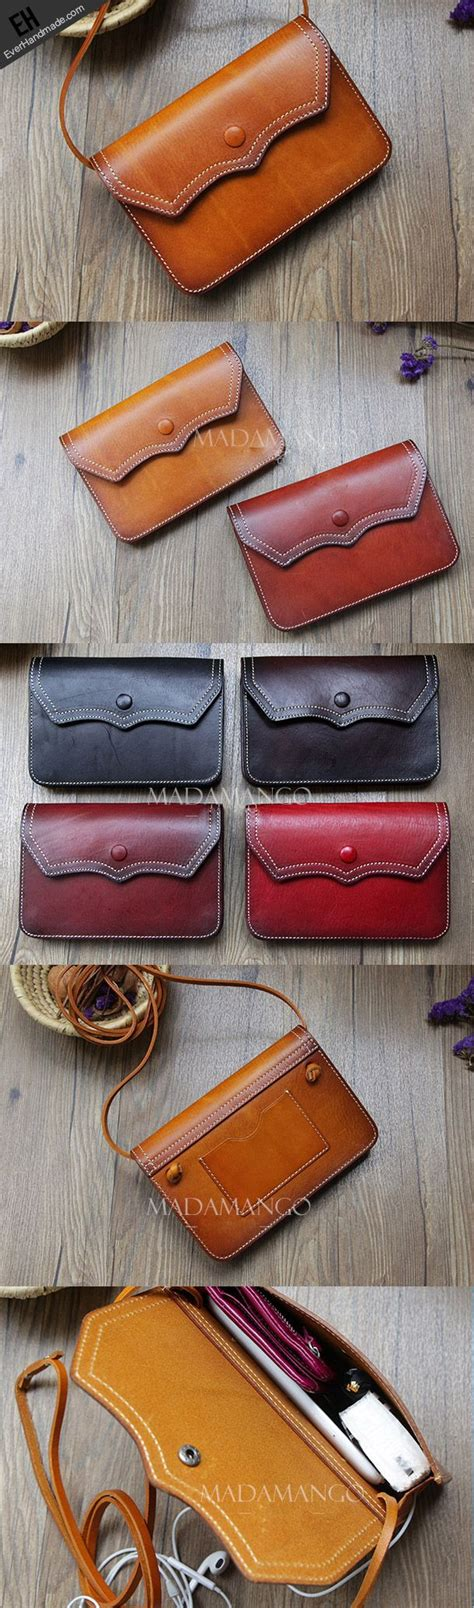 Handmade Leather Purse Patterns - 17 best ideas about leather bag pattern on